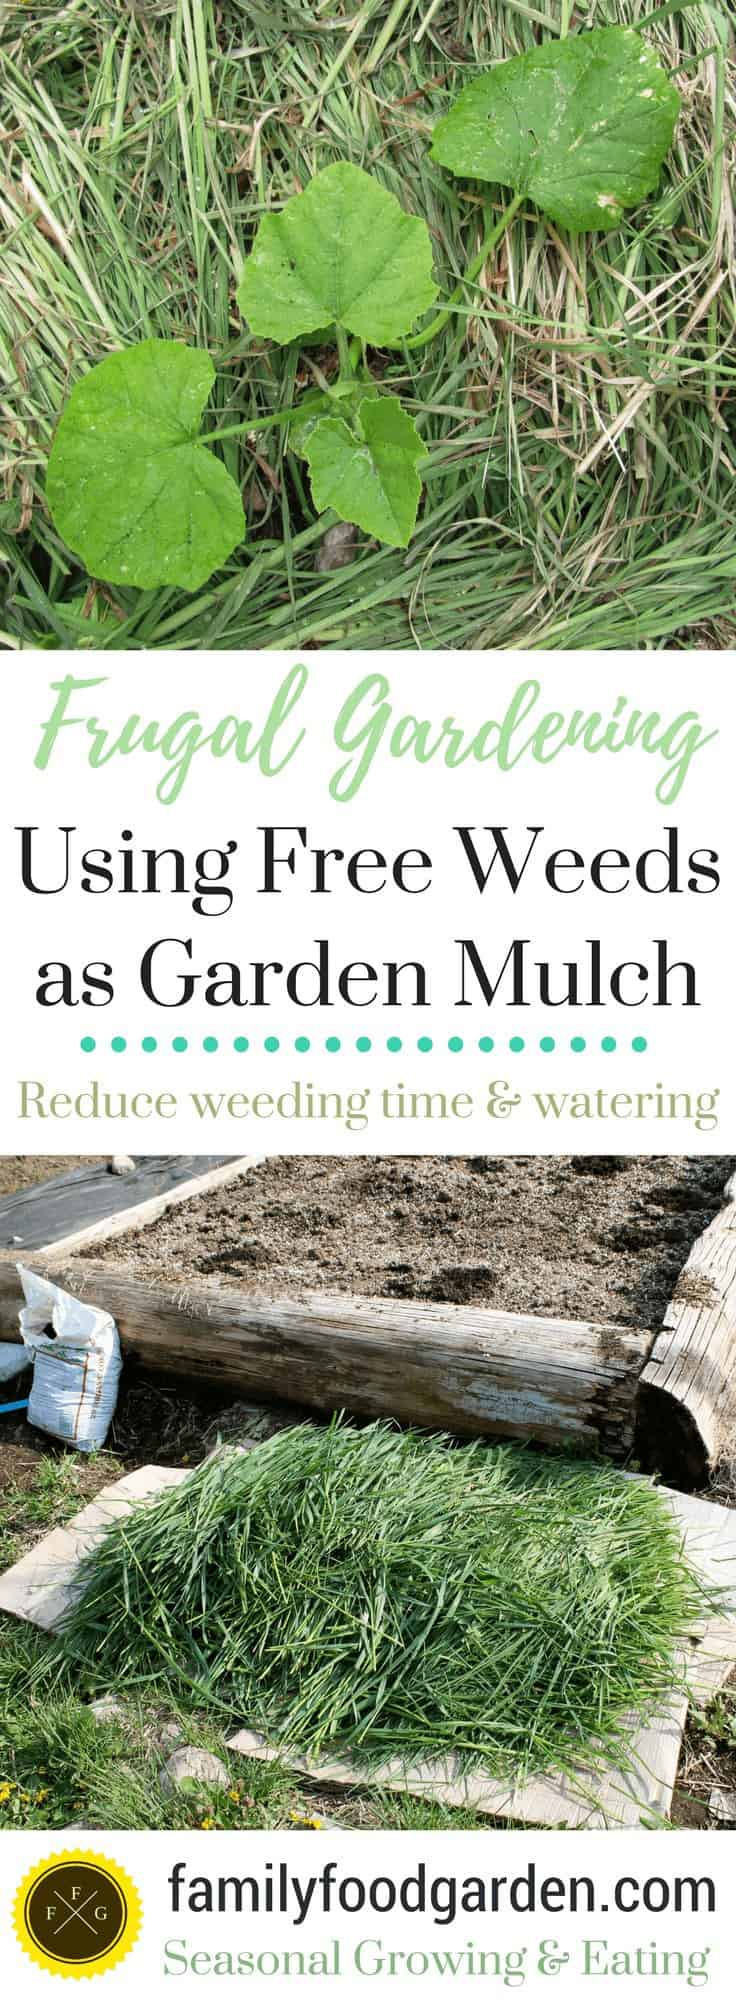 Using weeds as free garden mulch